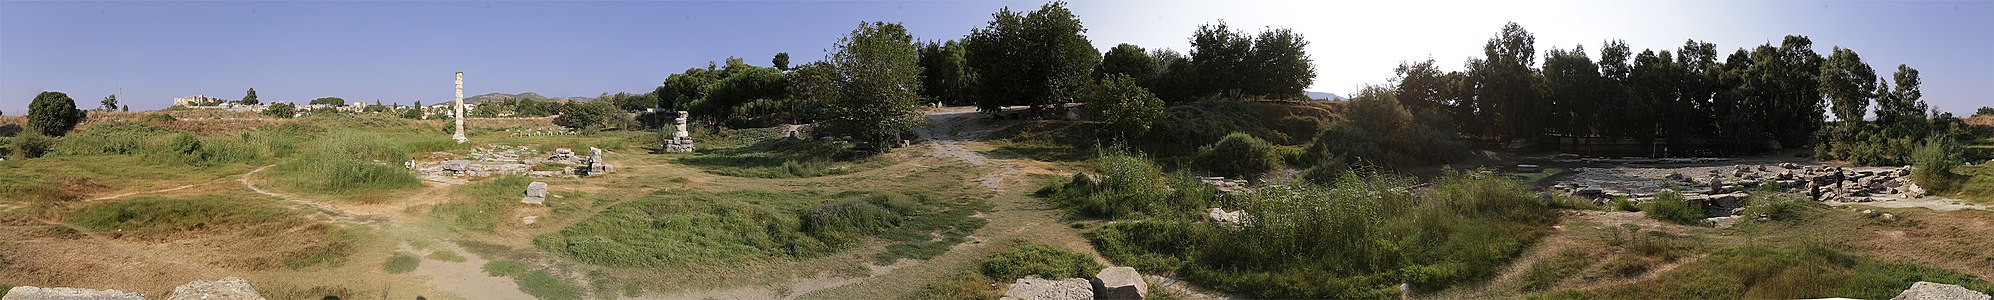 Site of Temple of Artemis.jpg